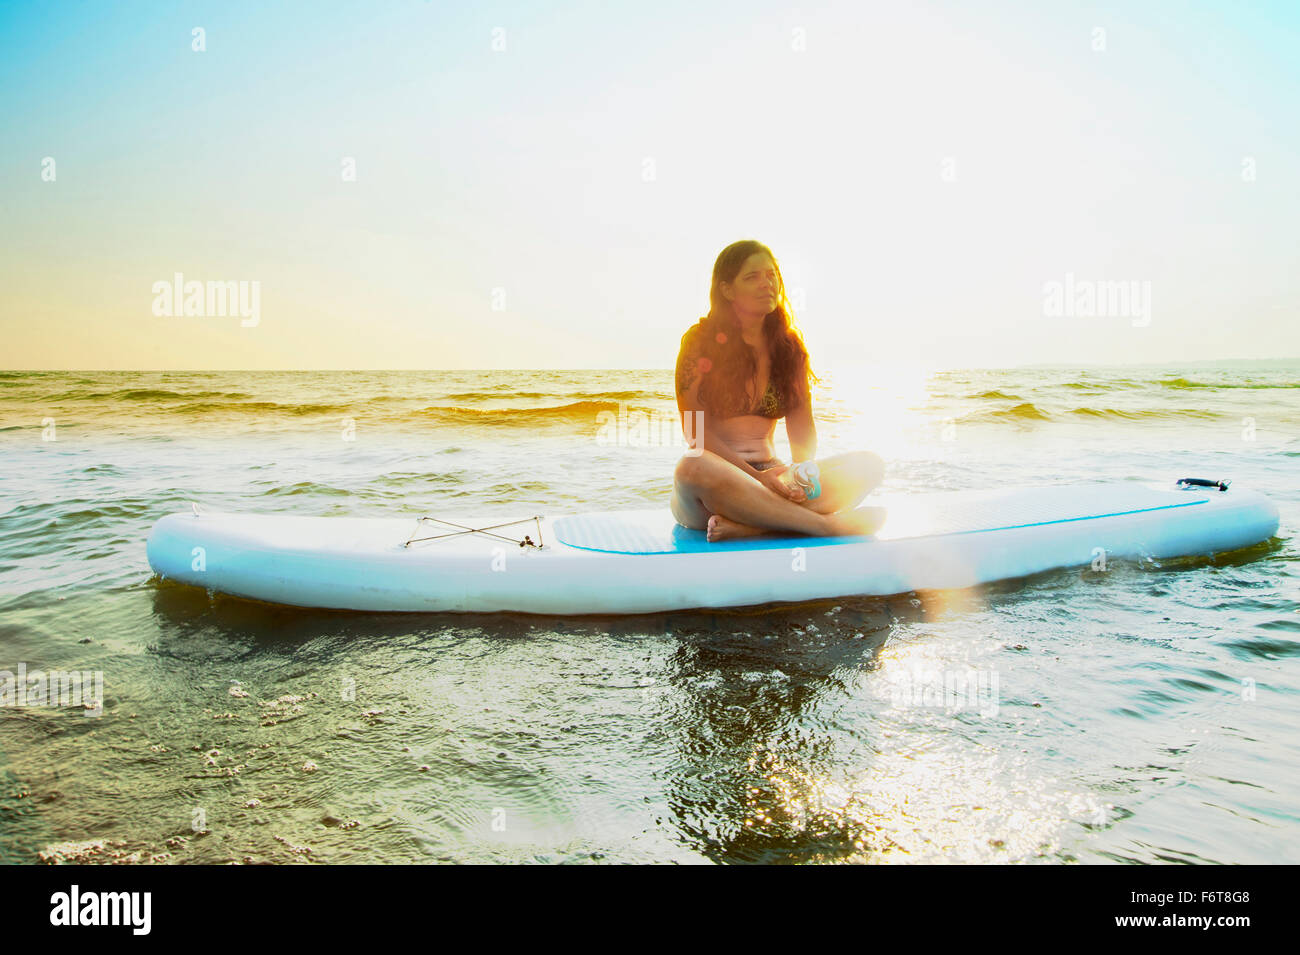 Woman sitting on paddleboard in lake Stock Photo